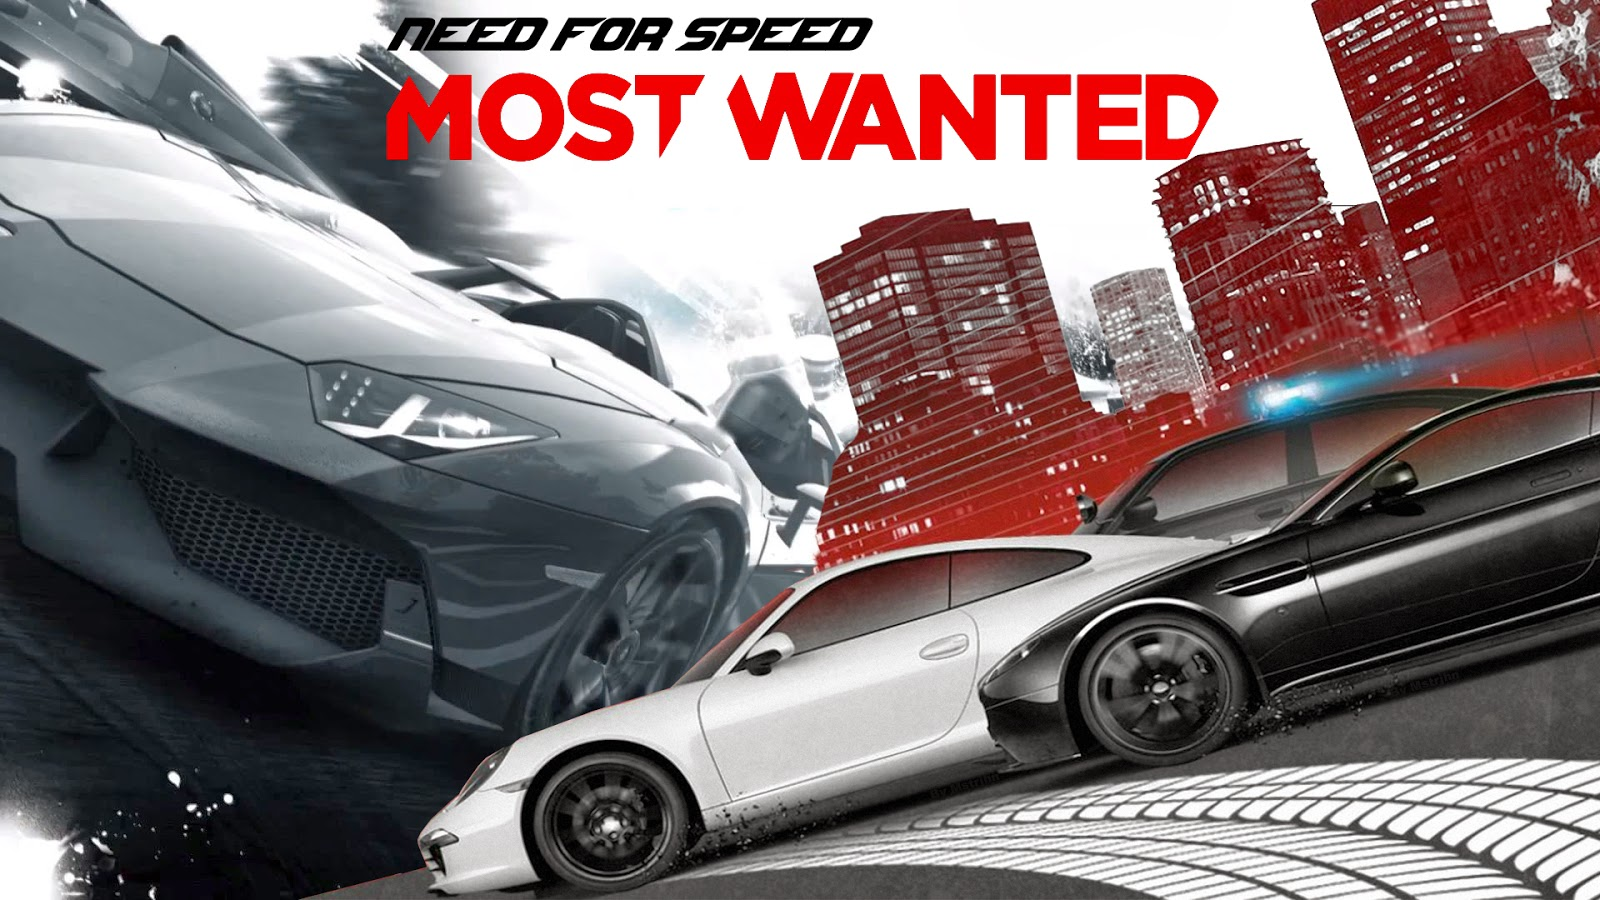 Need-for-Speed-Most-Wanted-Apk